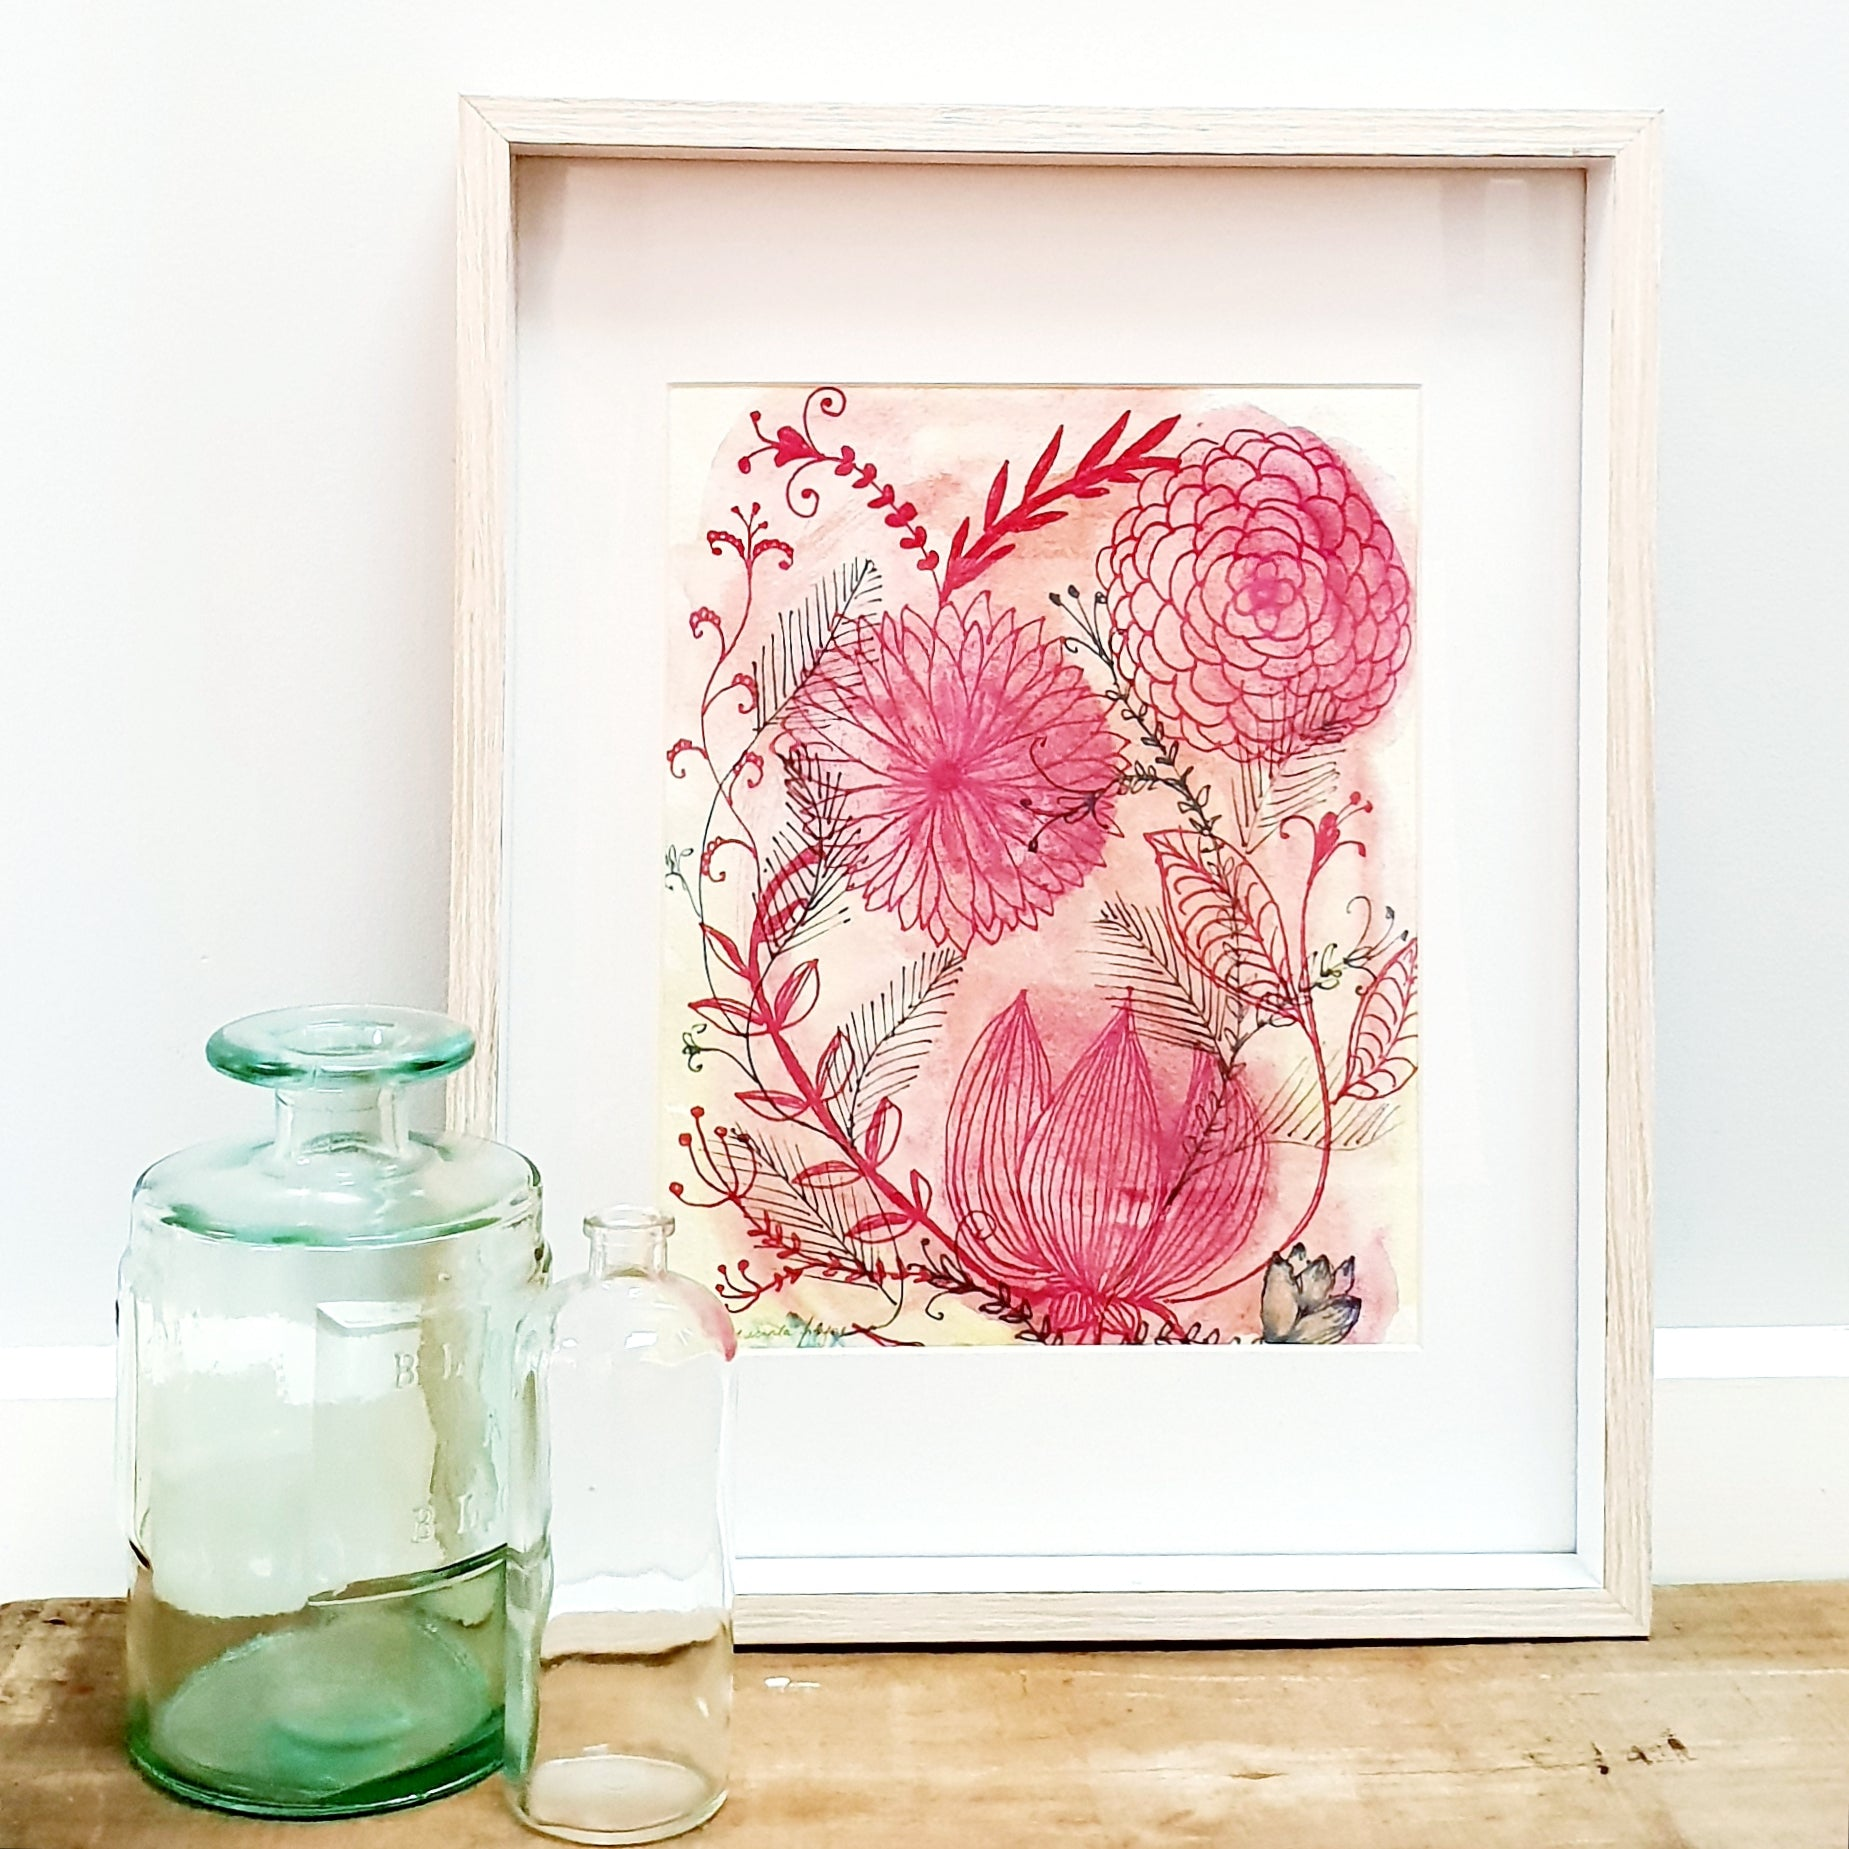 'Springtime Joy No. 3' Modern Floral Wall Art Print